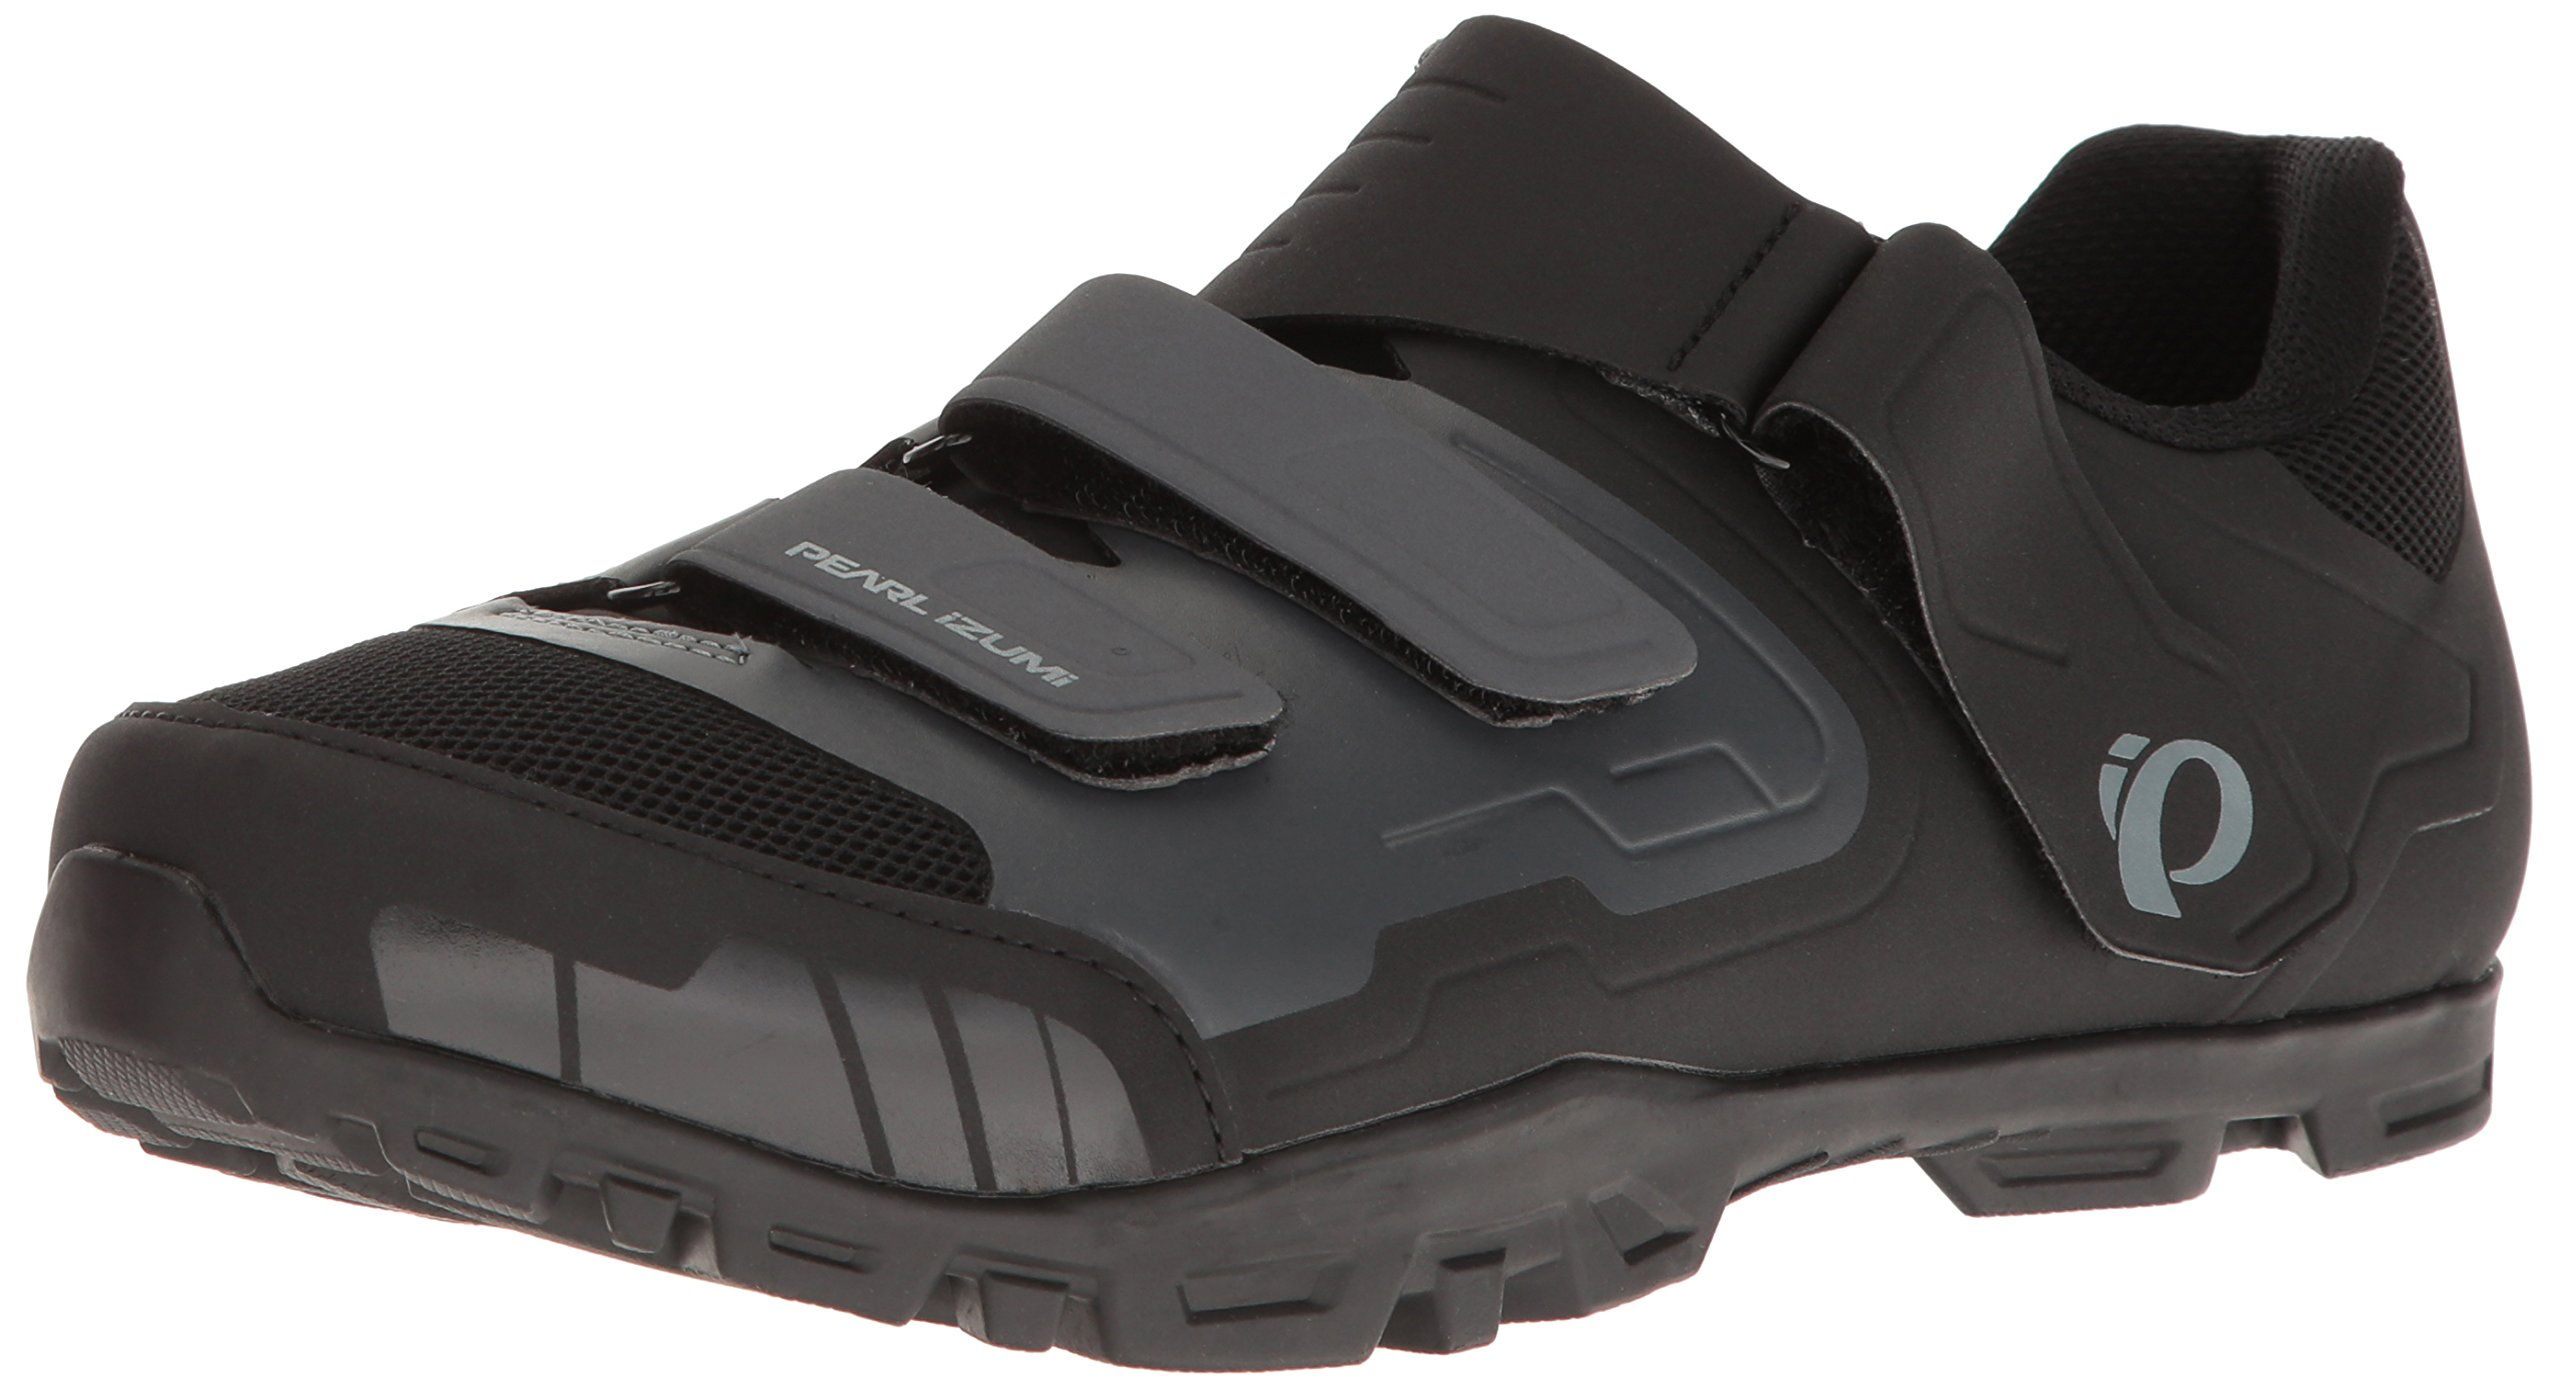 Pearl iZUMi Men's All-Road V4 Cycling Shoe, Black/Shadow Grey, 47 D EU by Pearl iZUMi